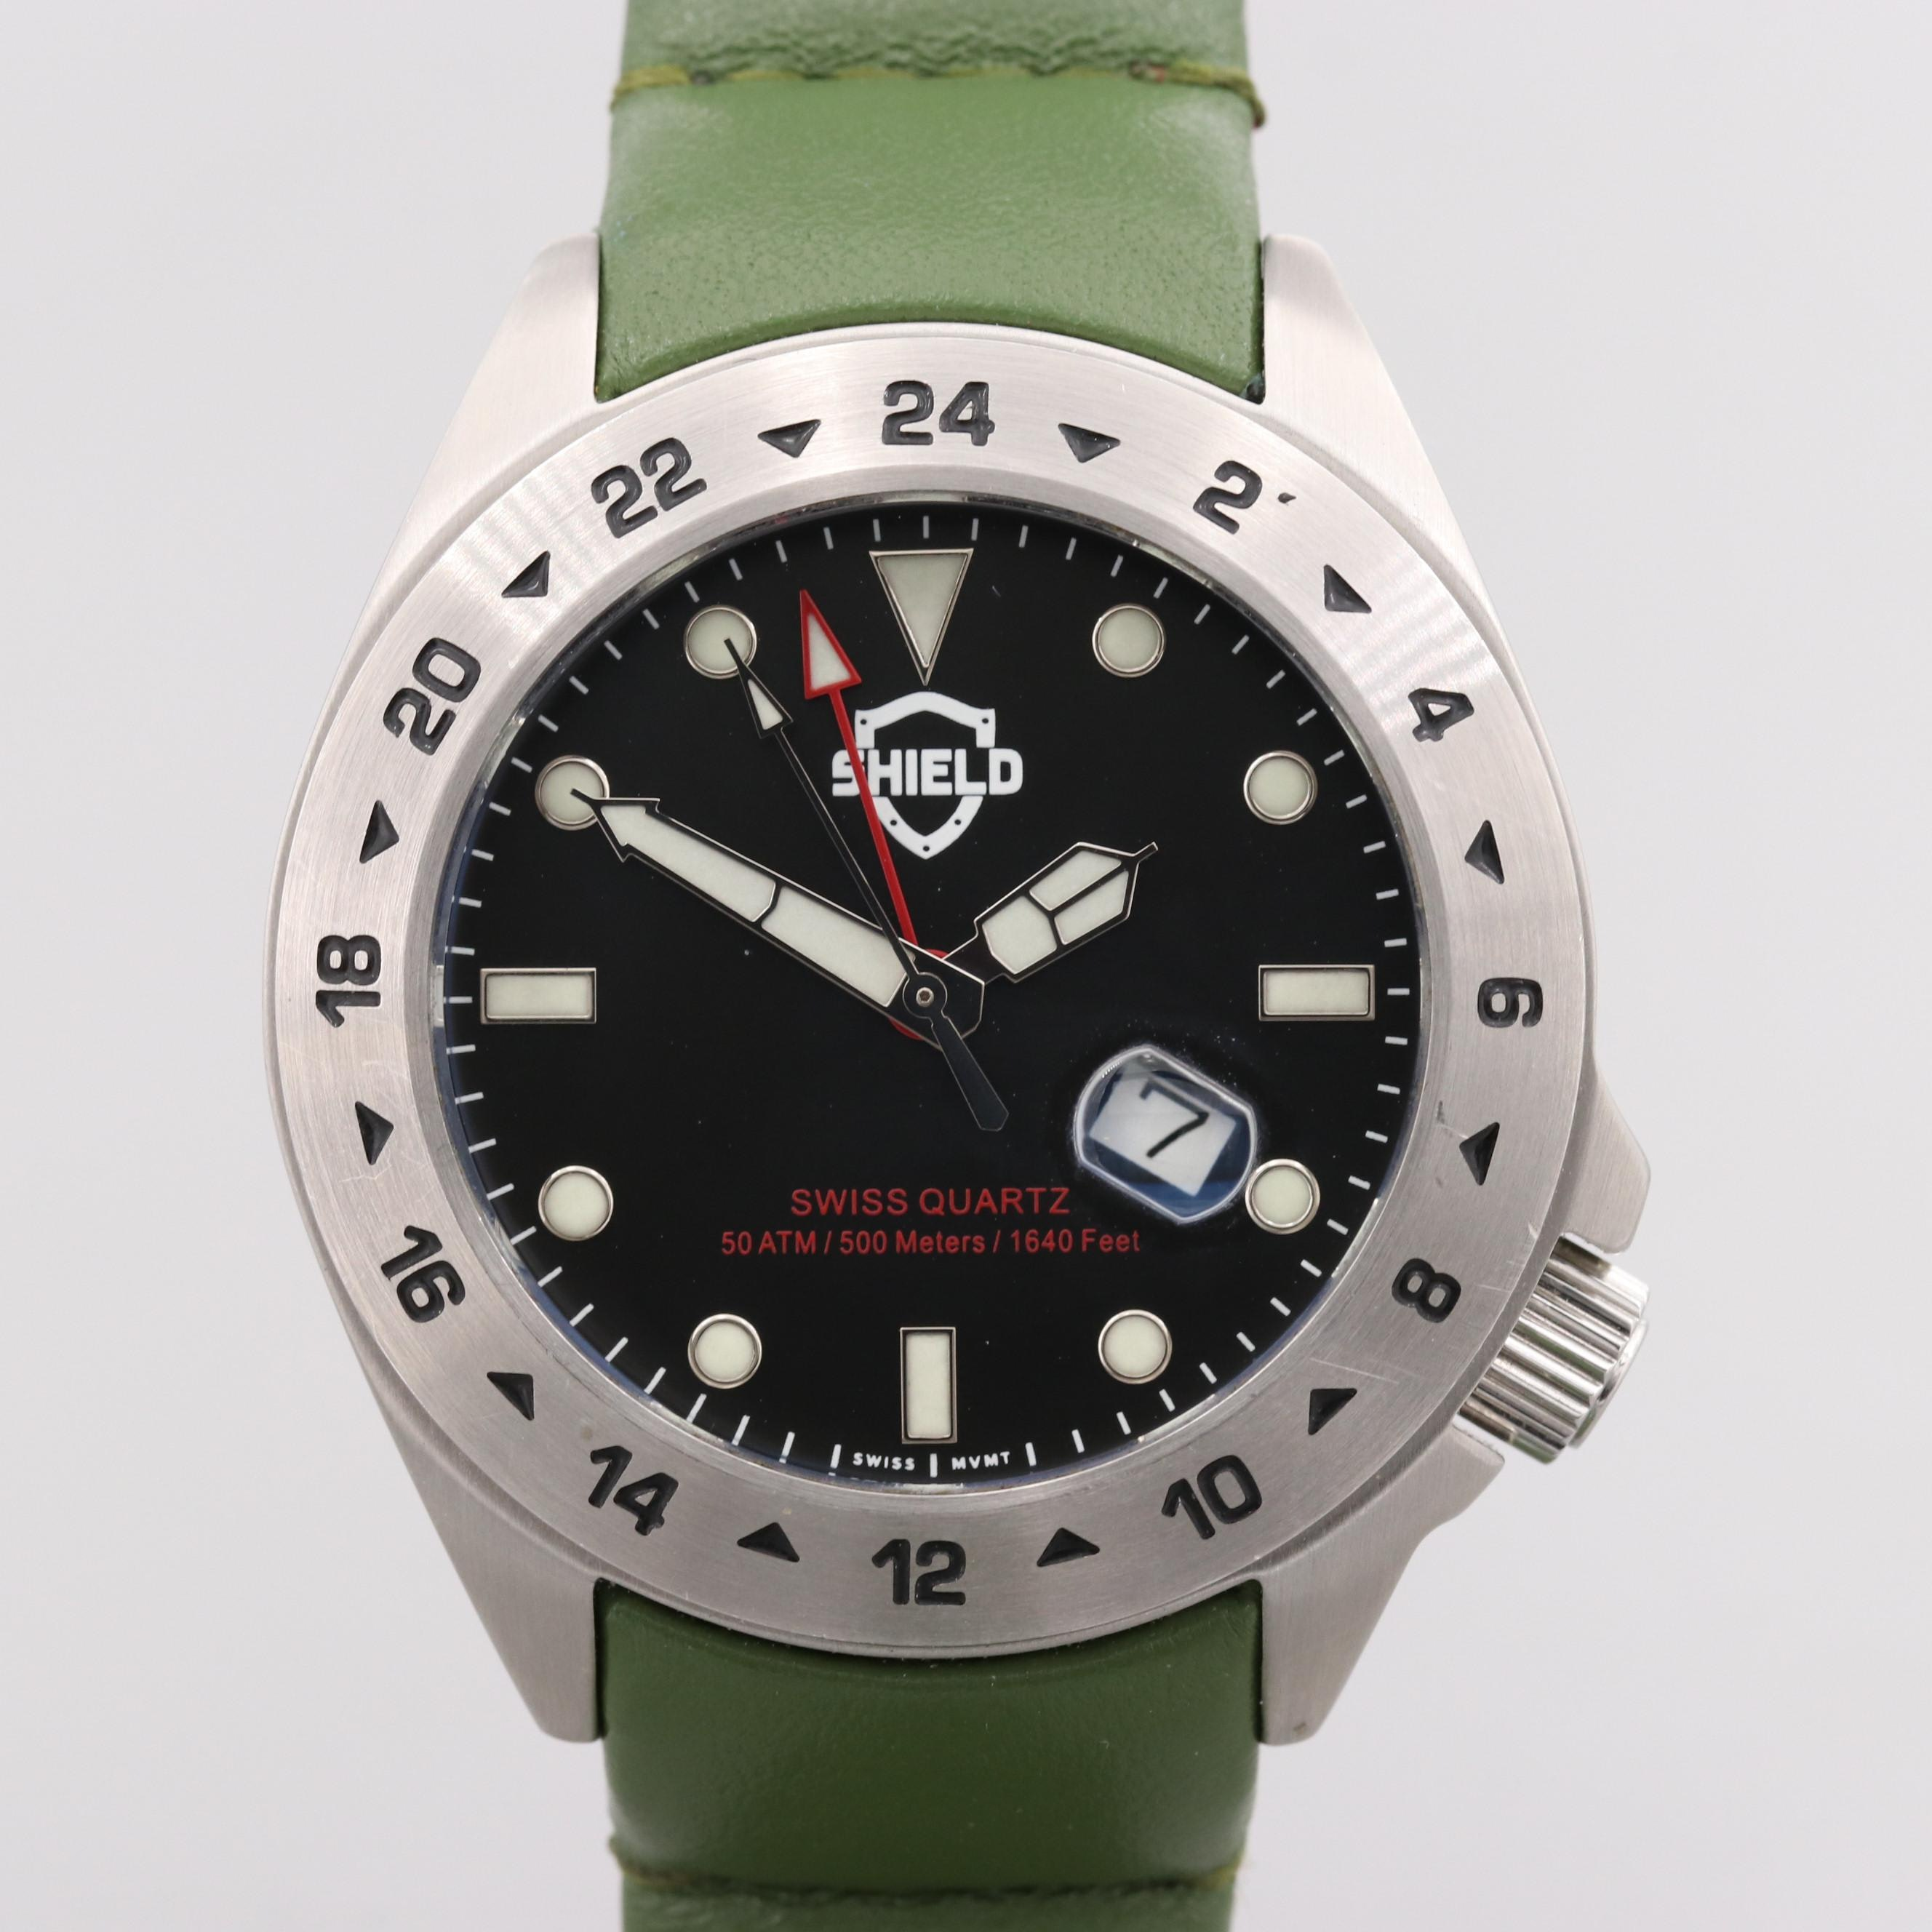 Sheild Caruso GMT Quartz Wristwatch